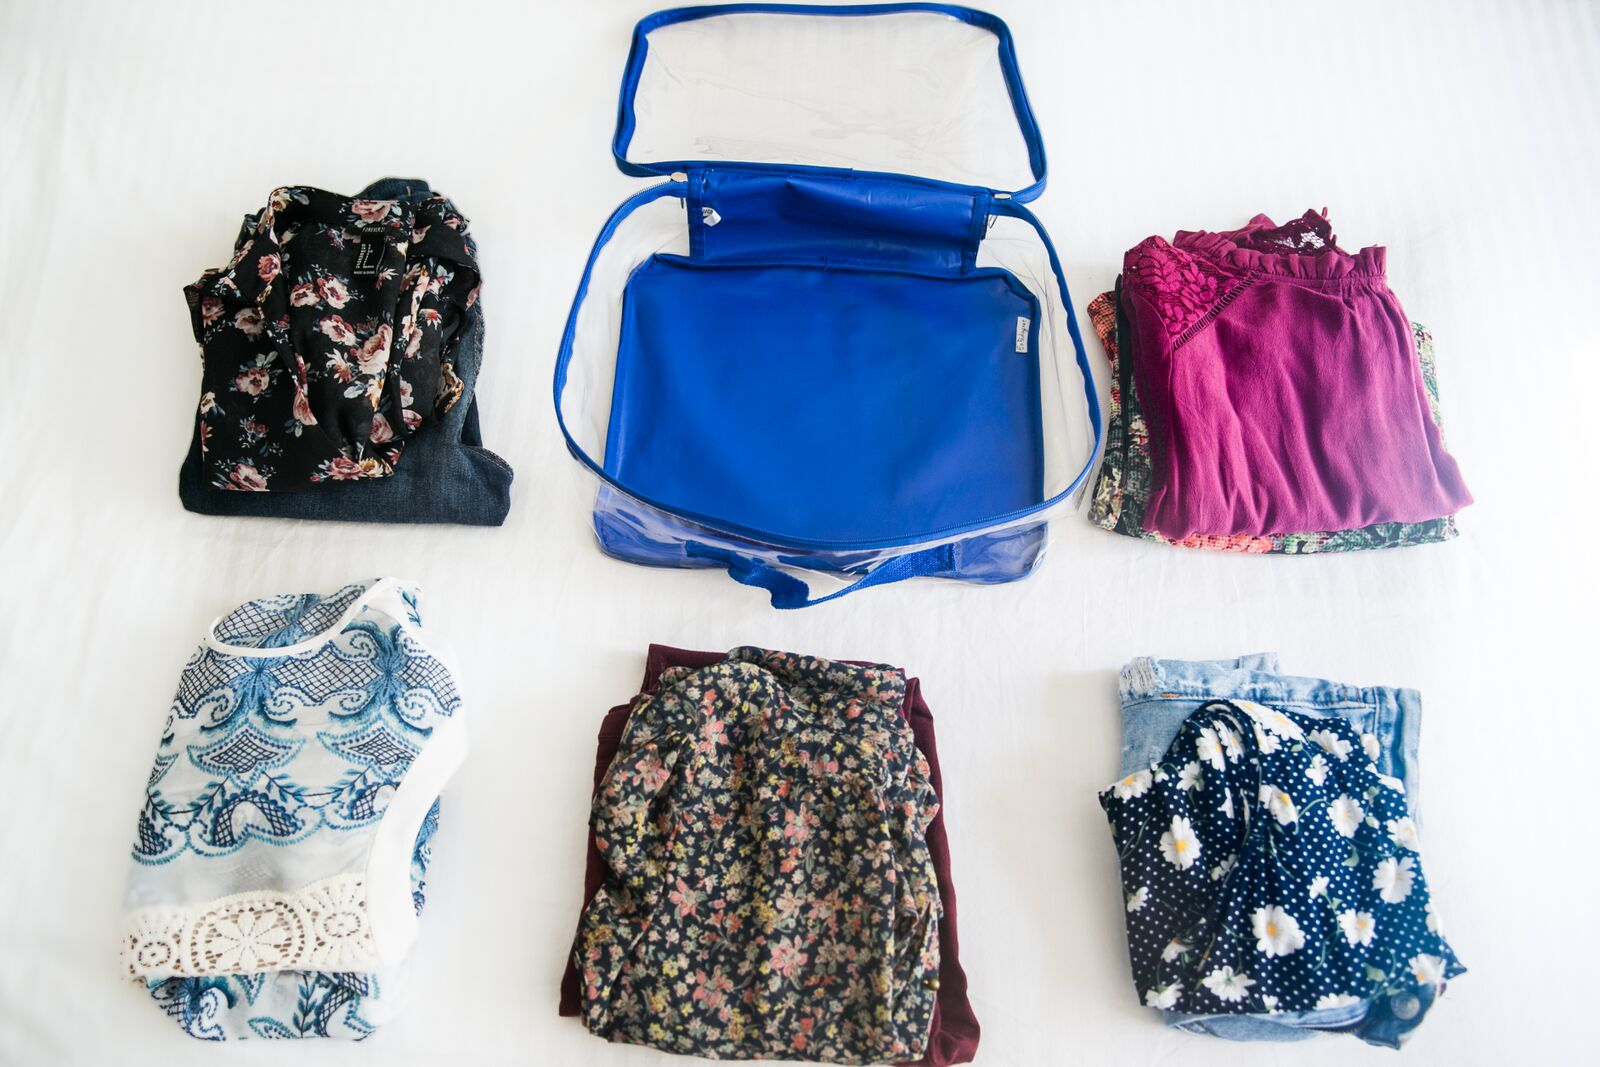 Using packing cells for suitcases by outfit